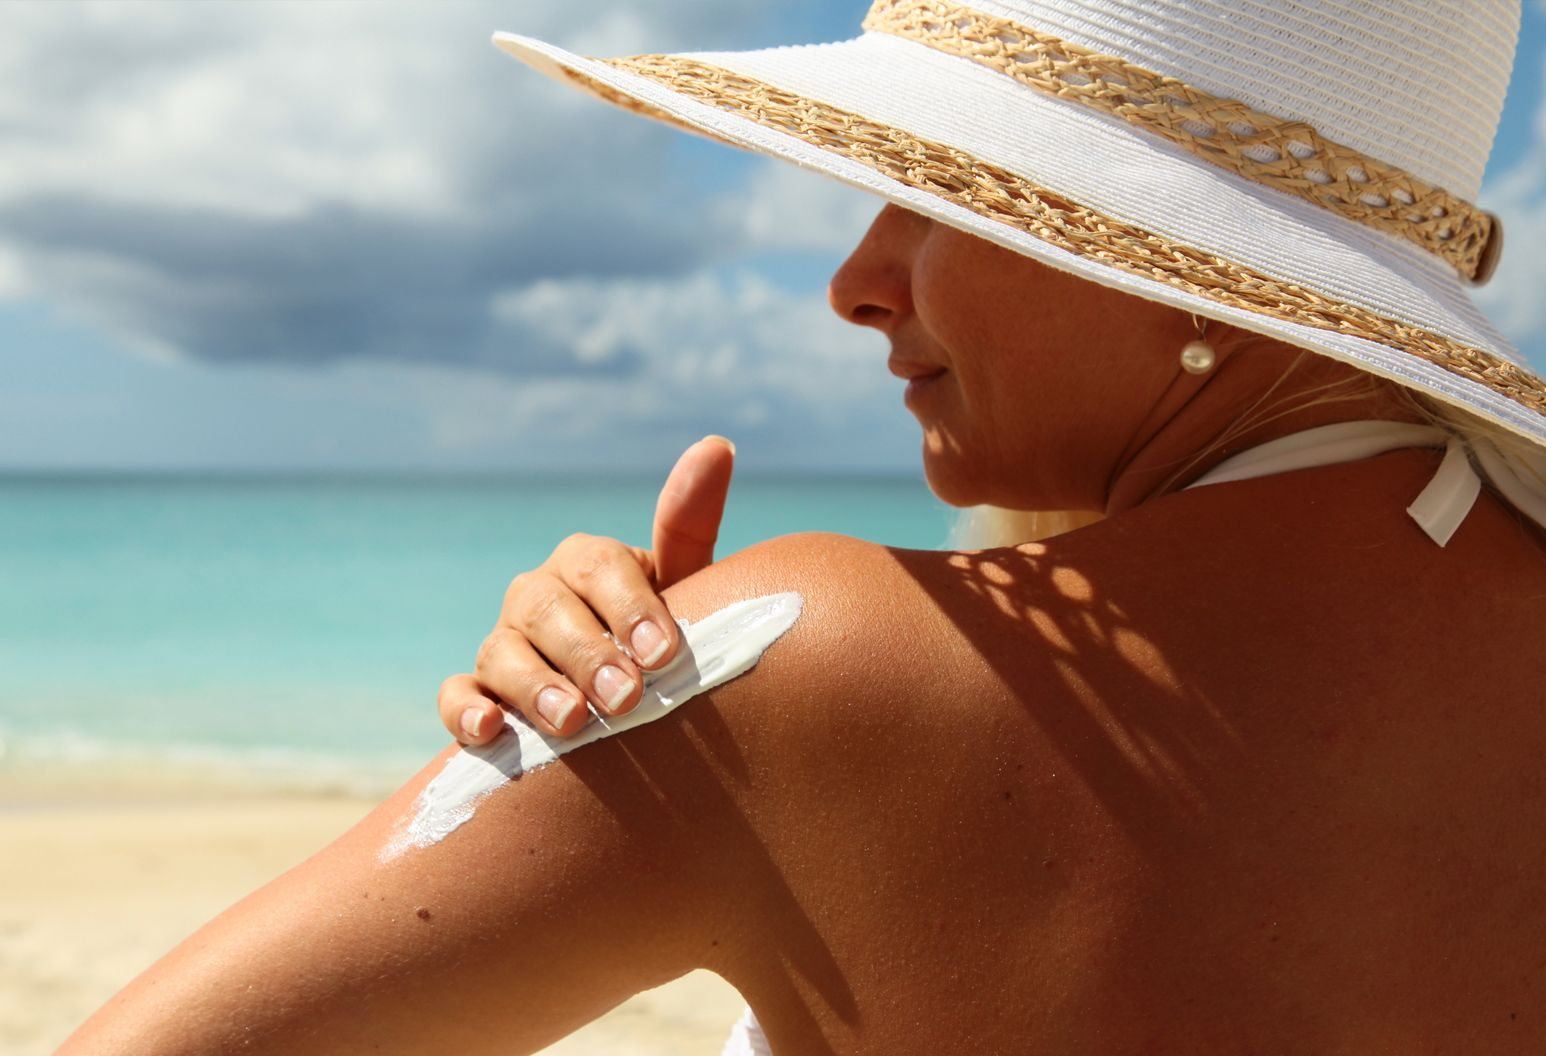 Woman at the beach applying sun screen to her shoulder.